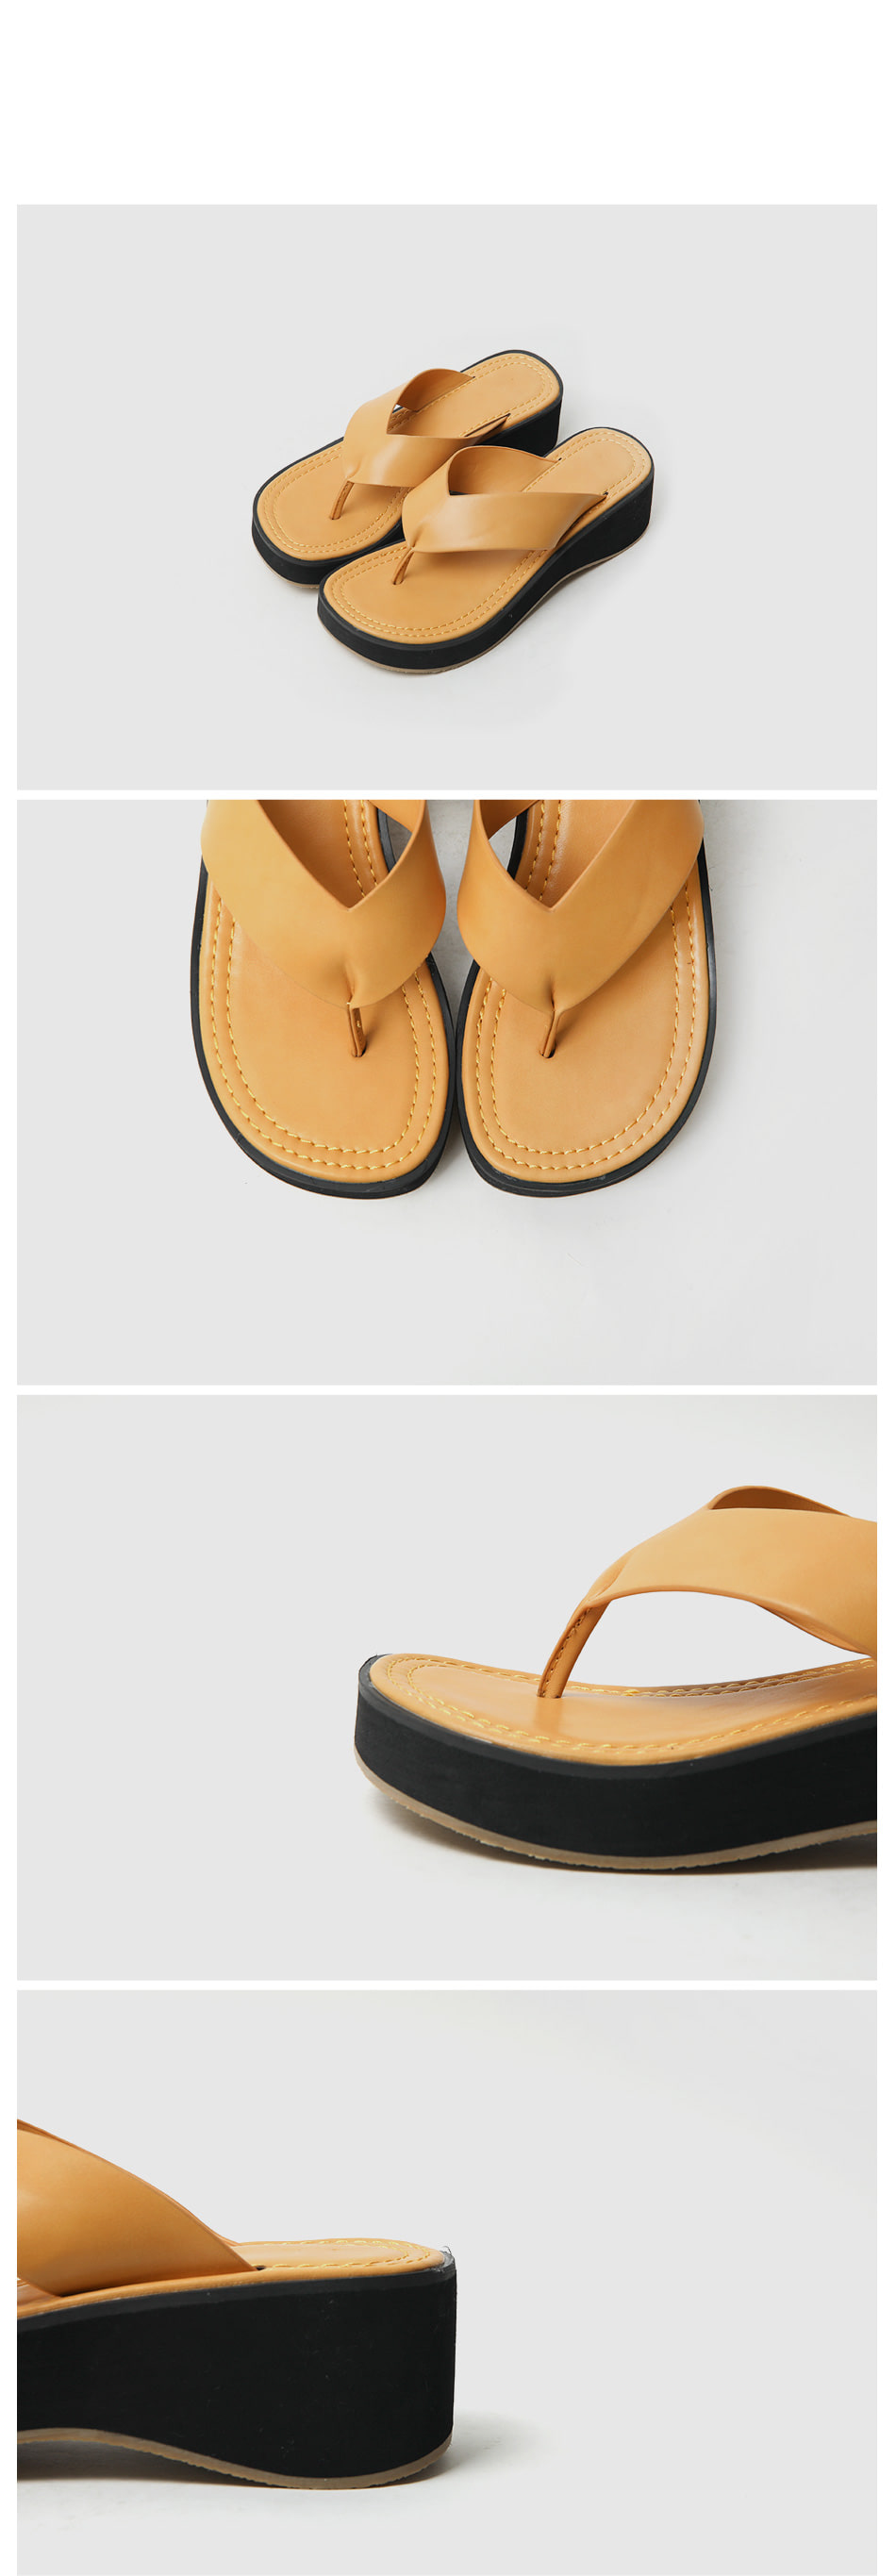 Tael Slippers 5cm